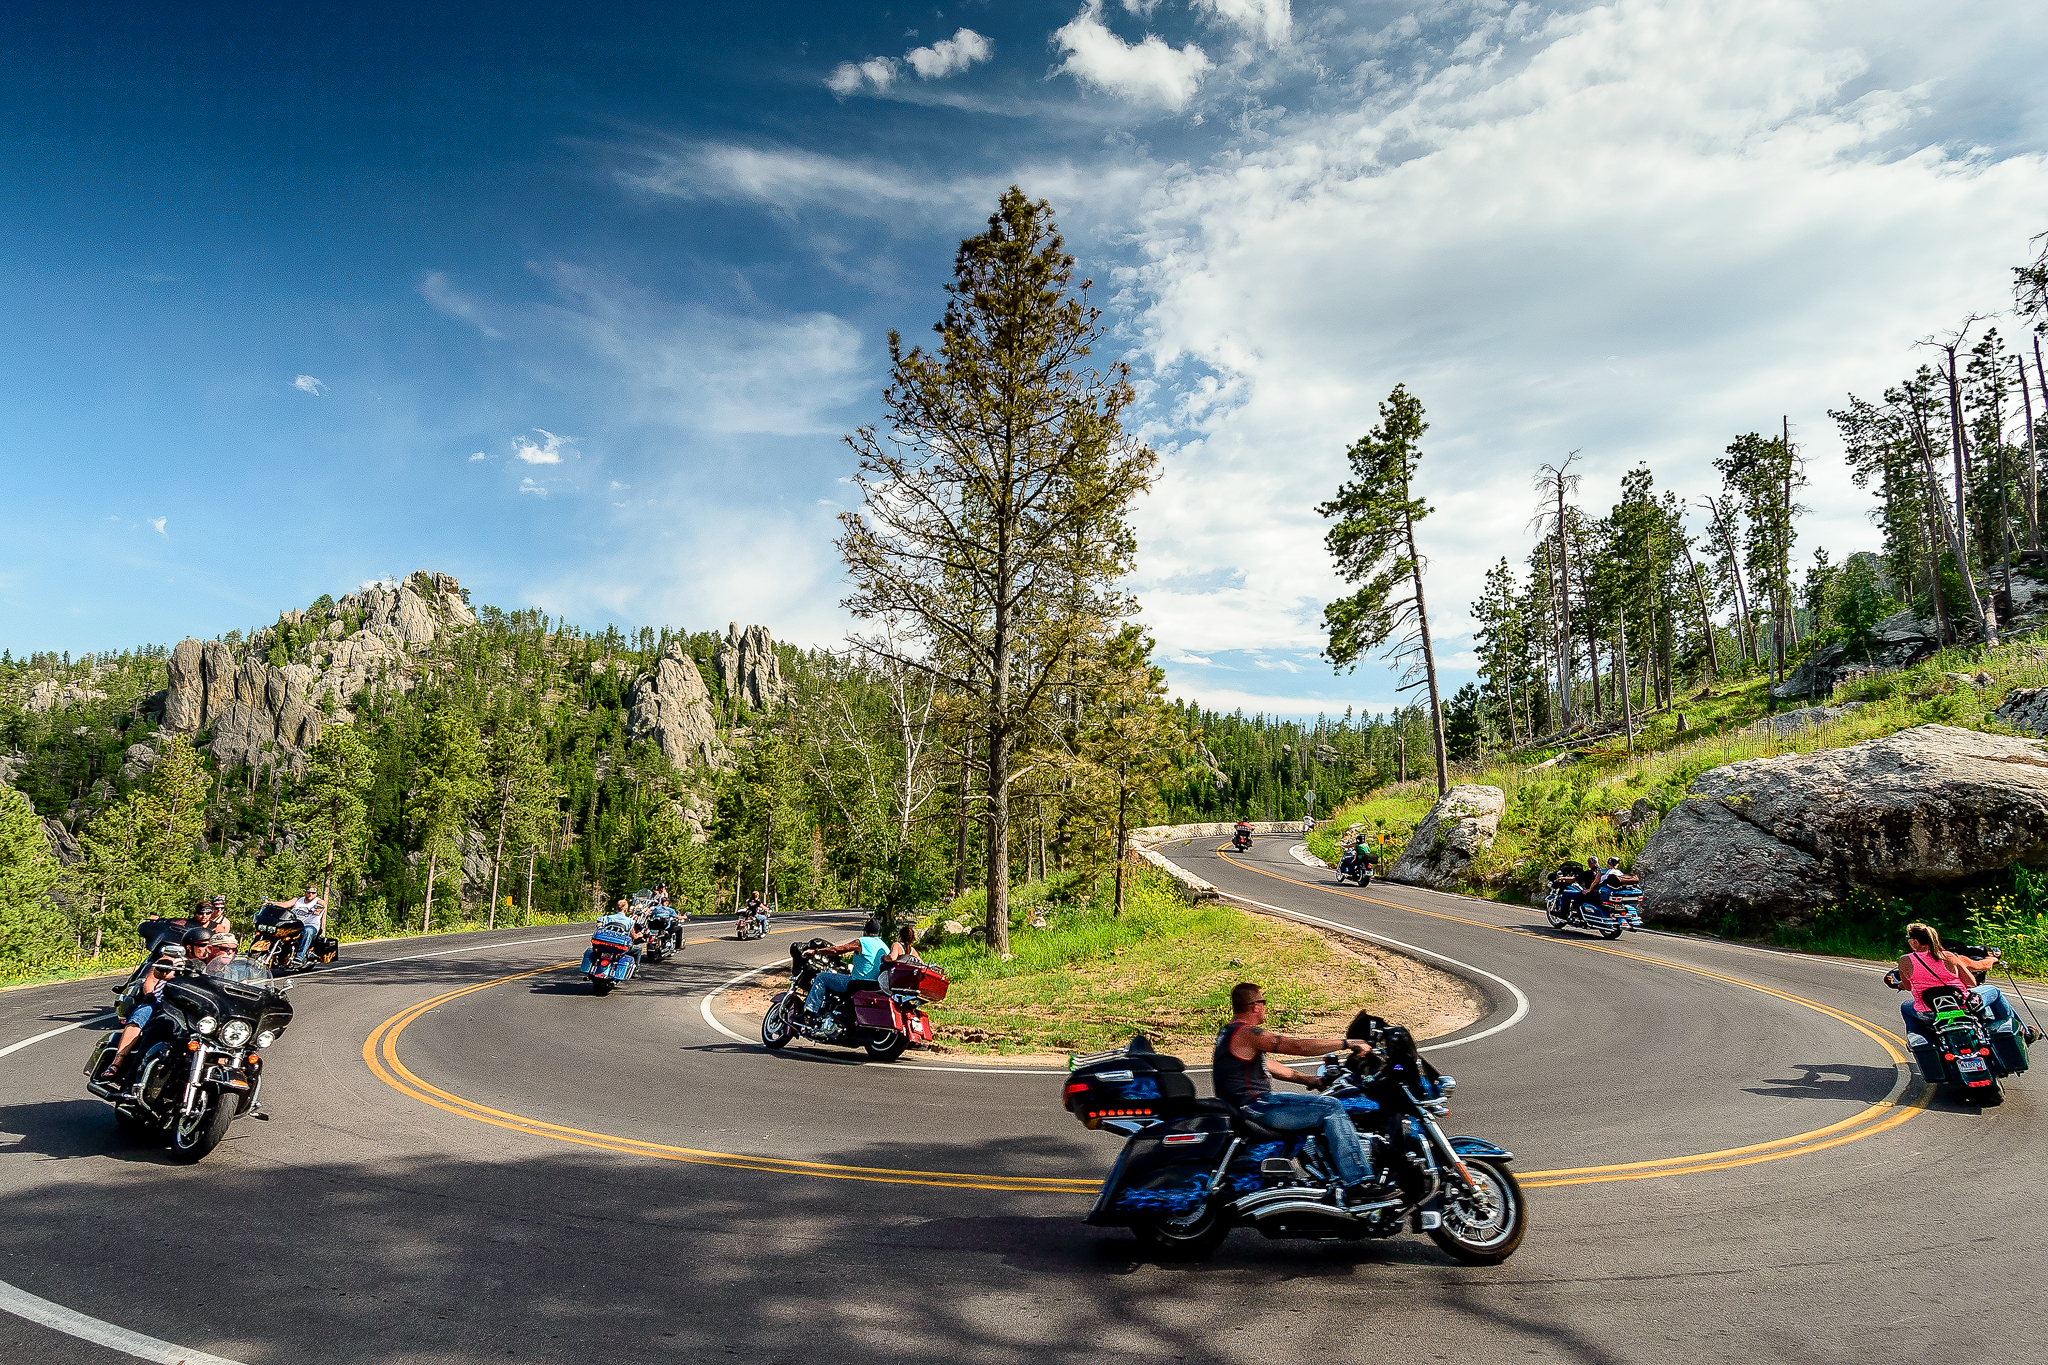 81st Annual Sturgis Motorcycle Rally